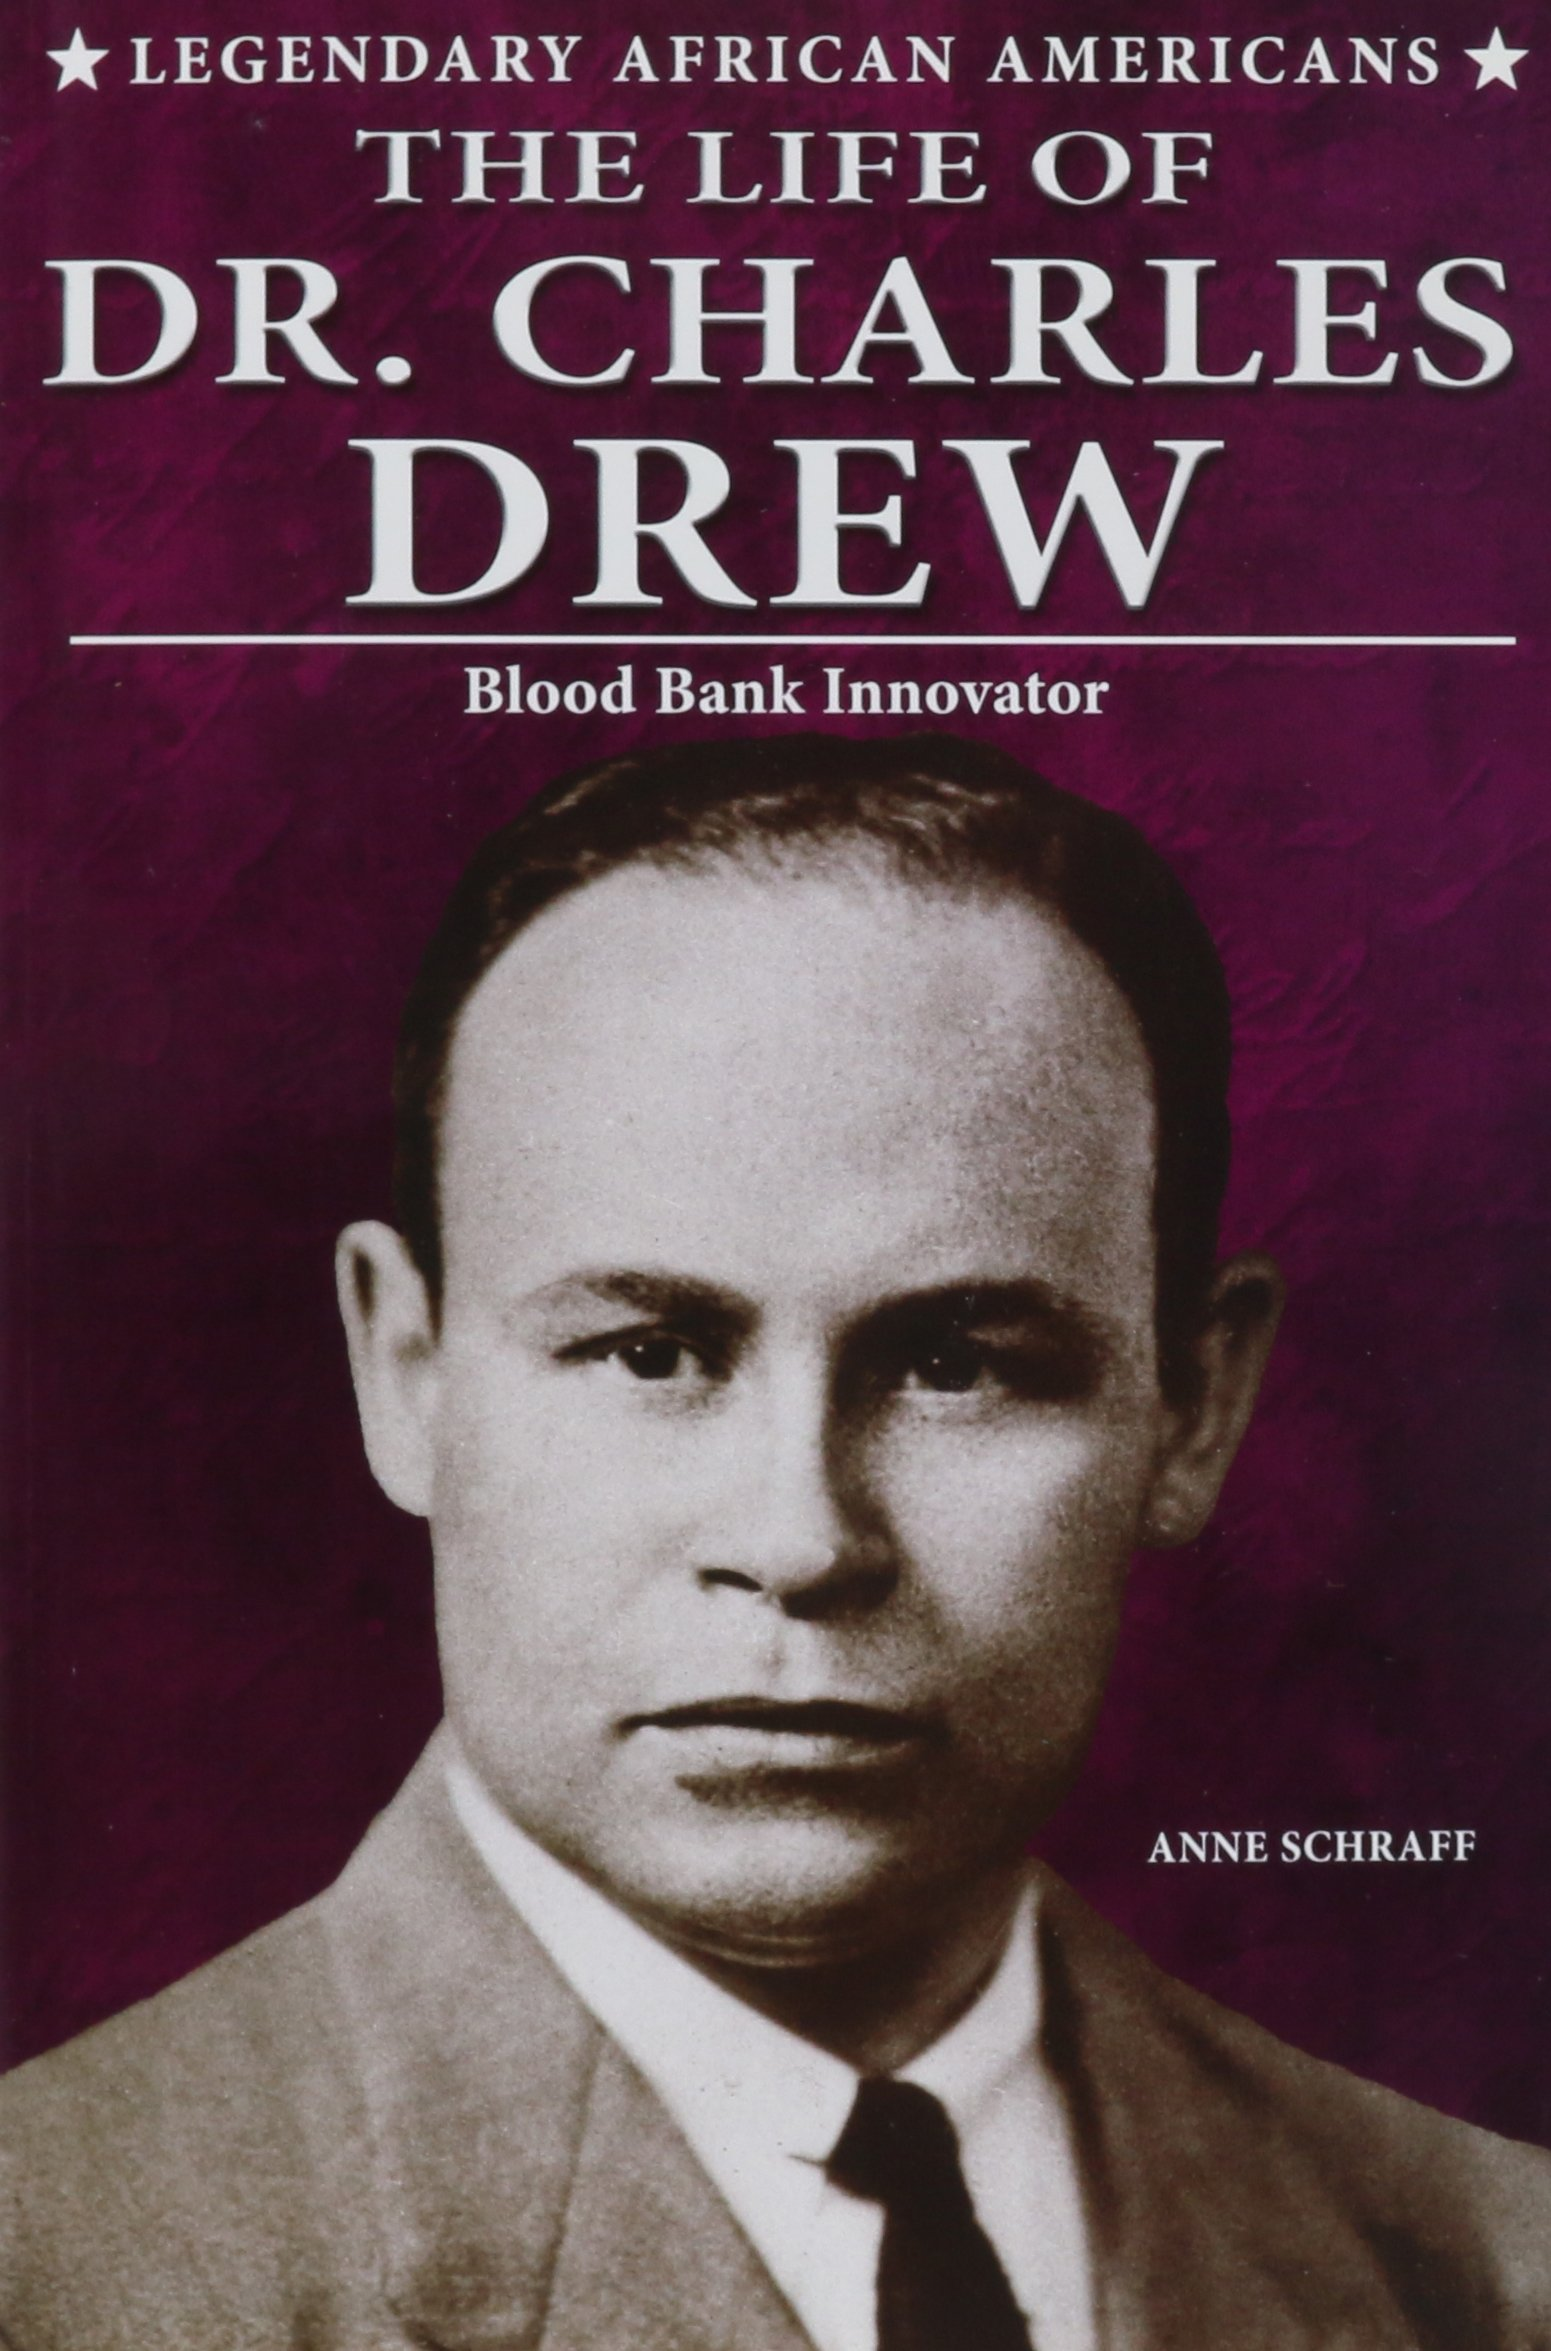 The Life of Dr. Charles Drew: Blood Bank Innovator (Legendary African Americans) pdf